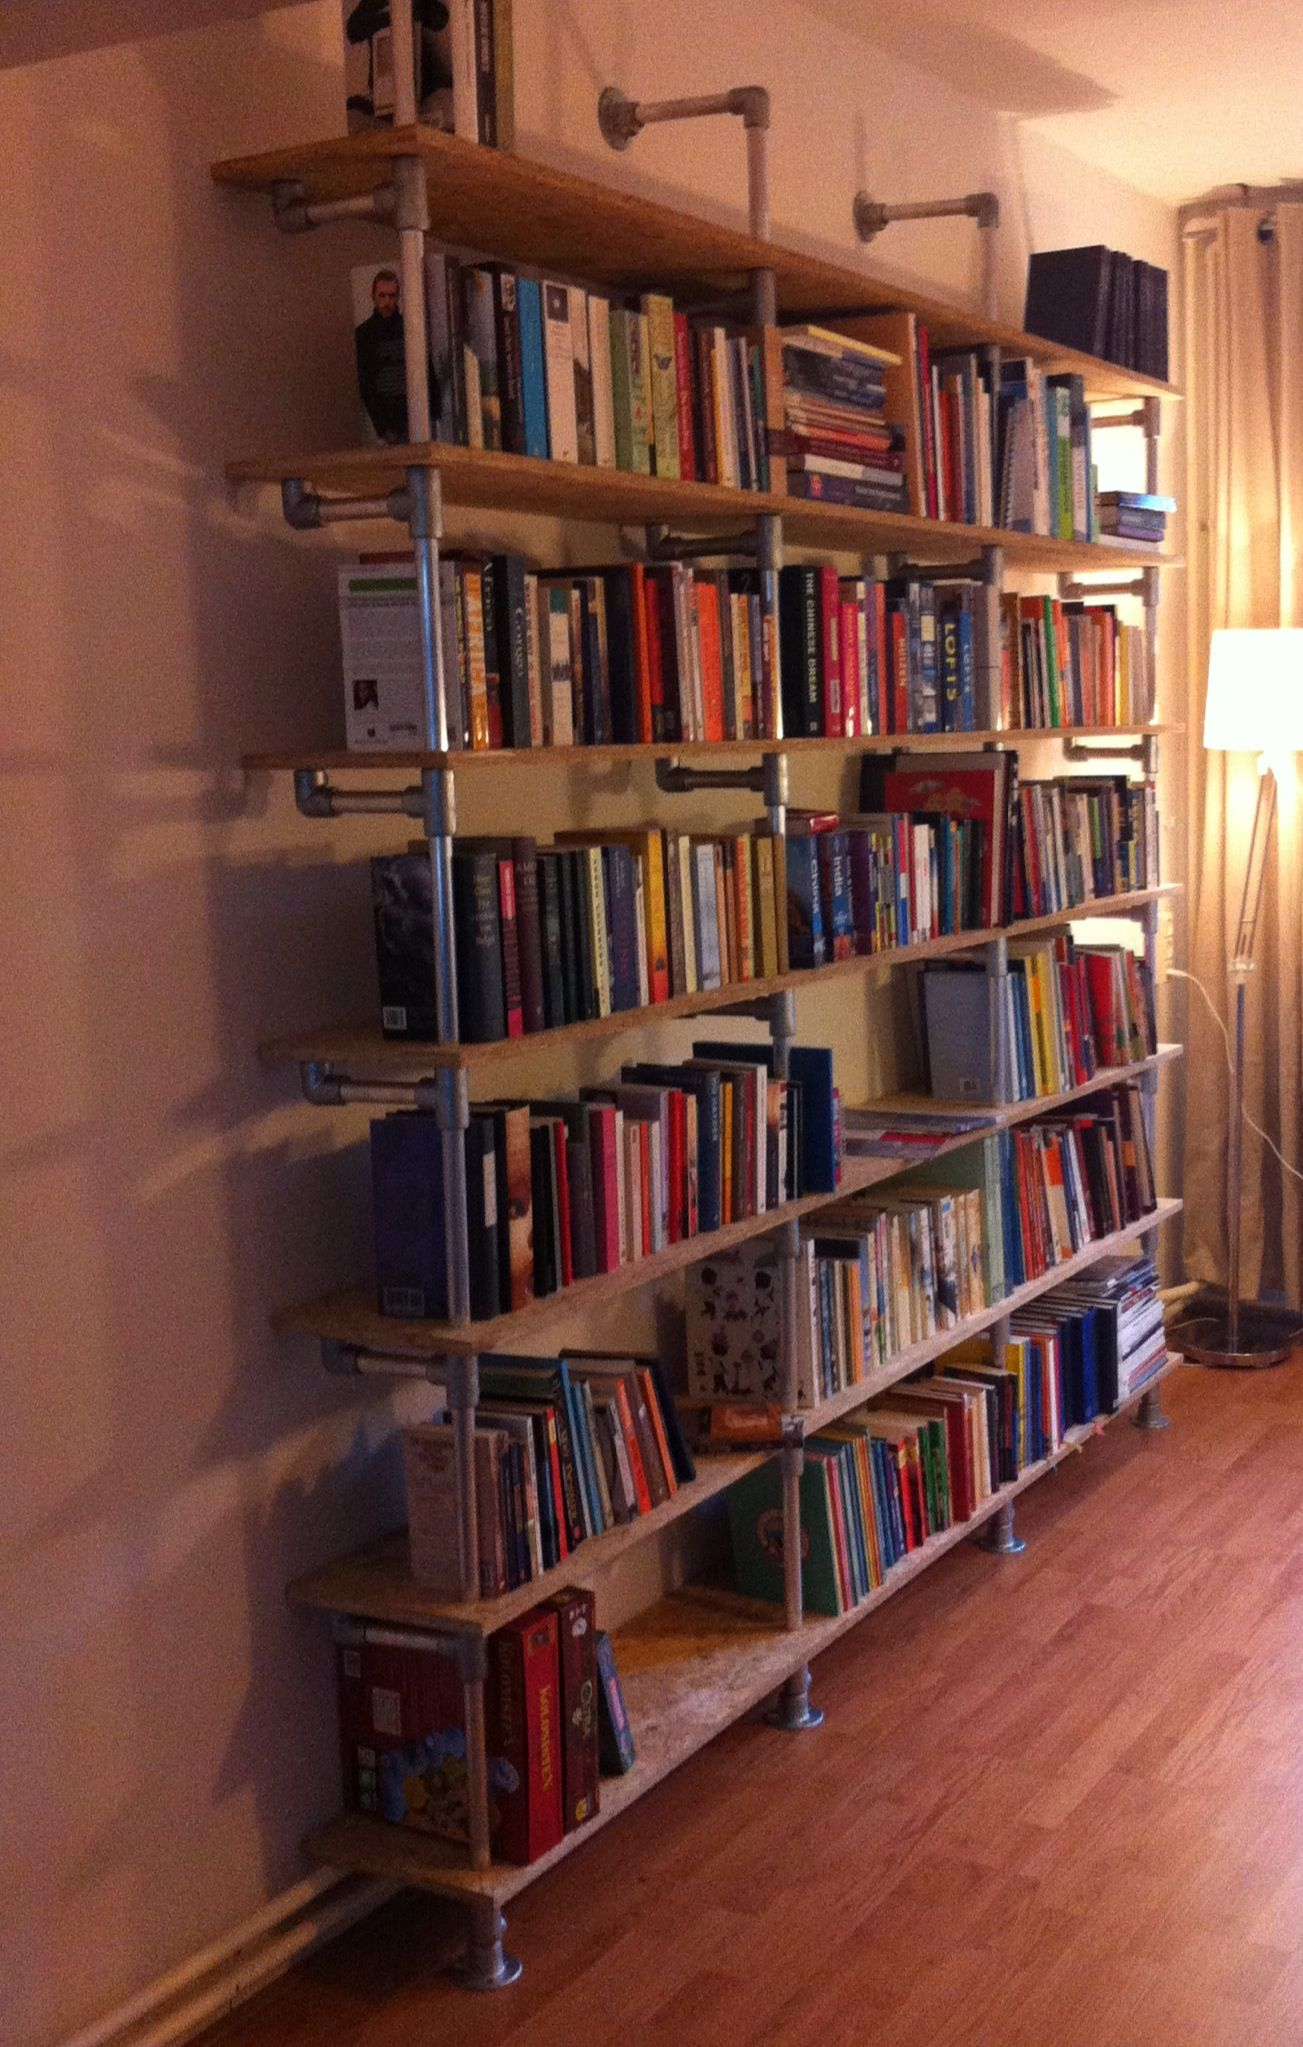 New Kisten Regal Room Diy Bookshelf Perfect For New Library Room My Room